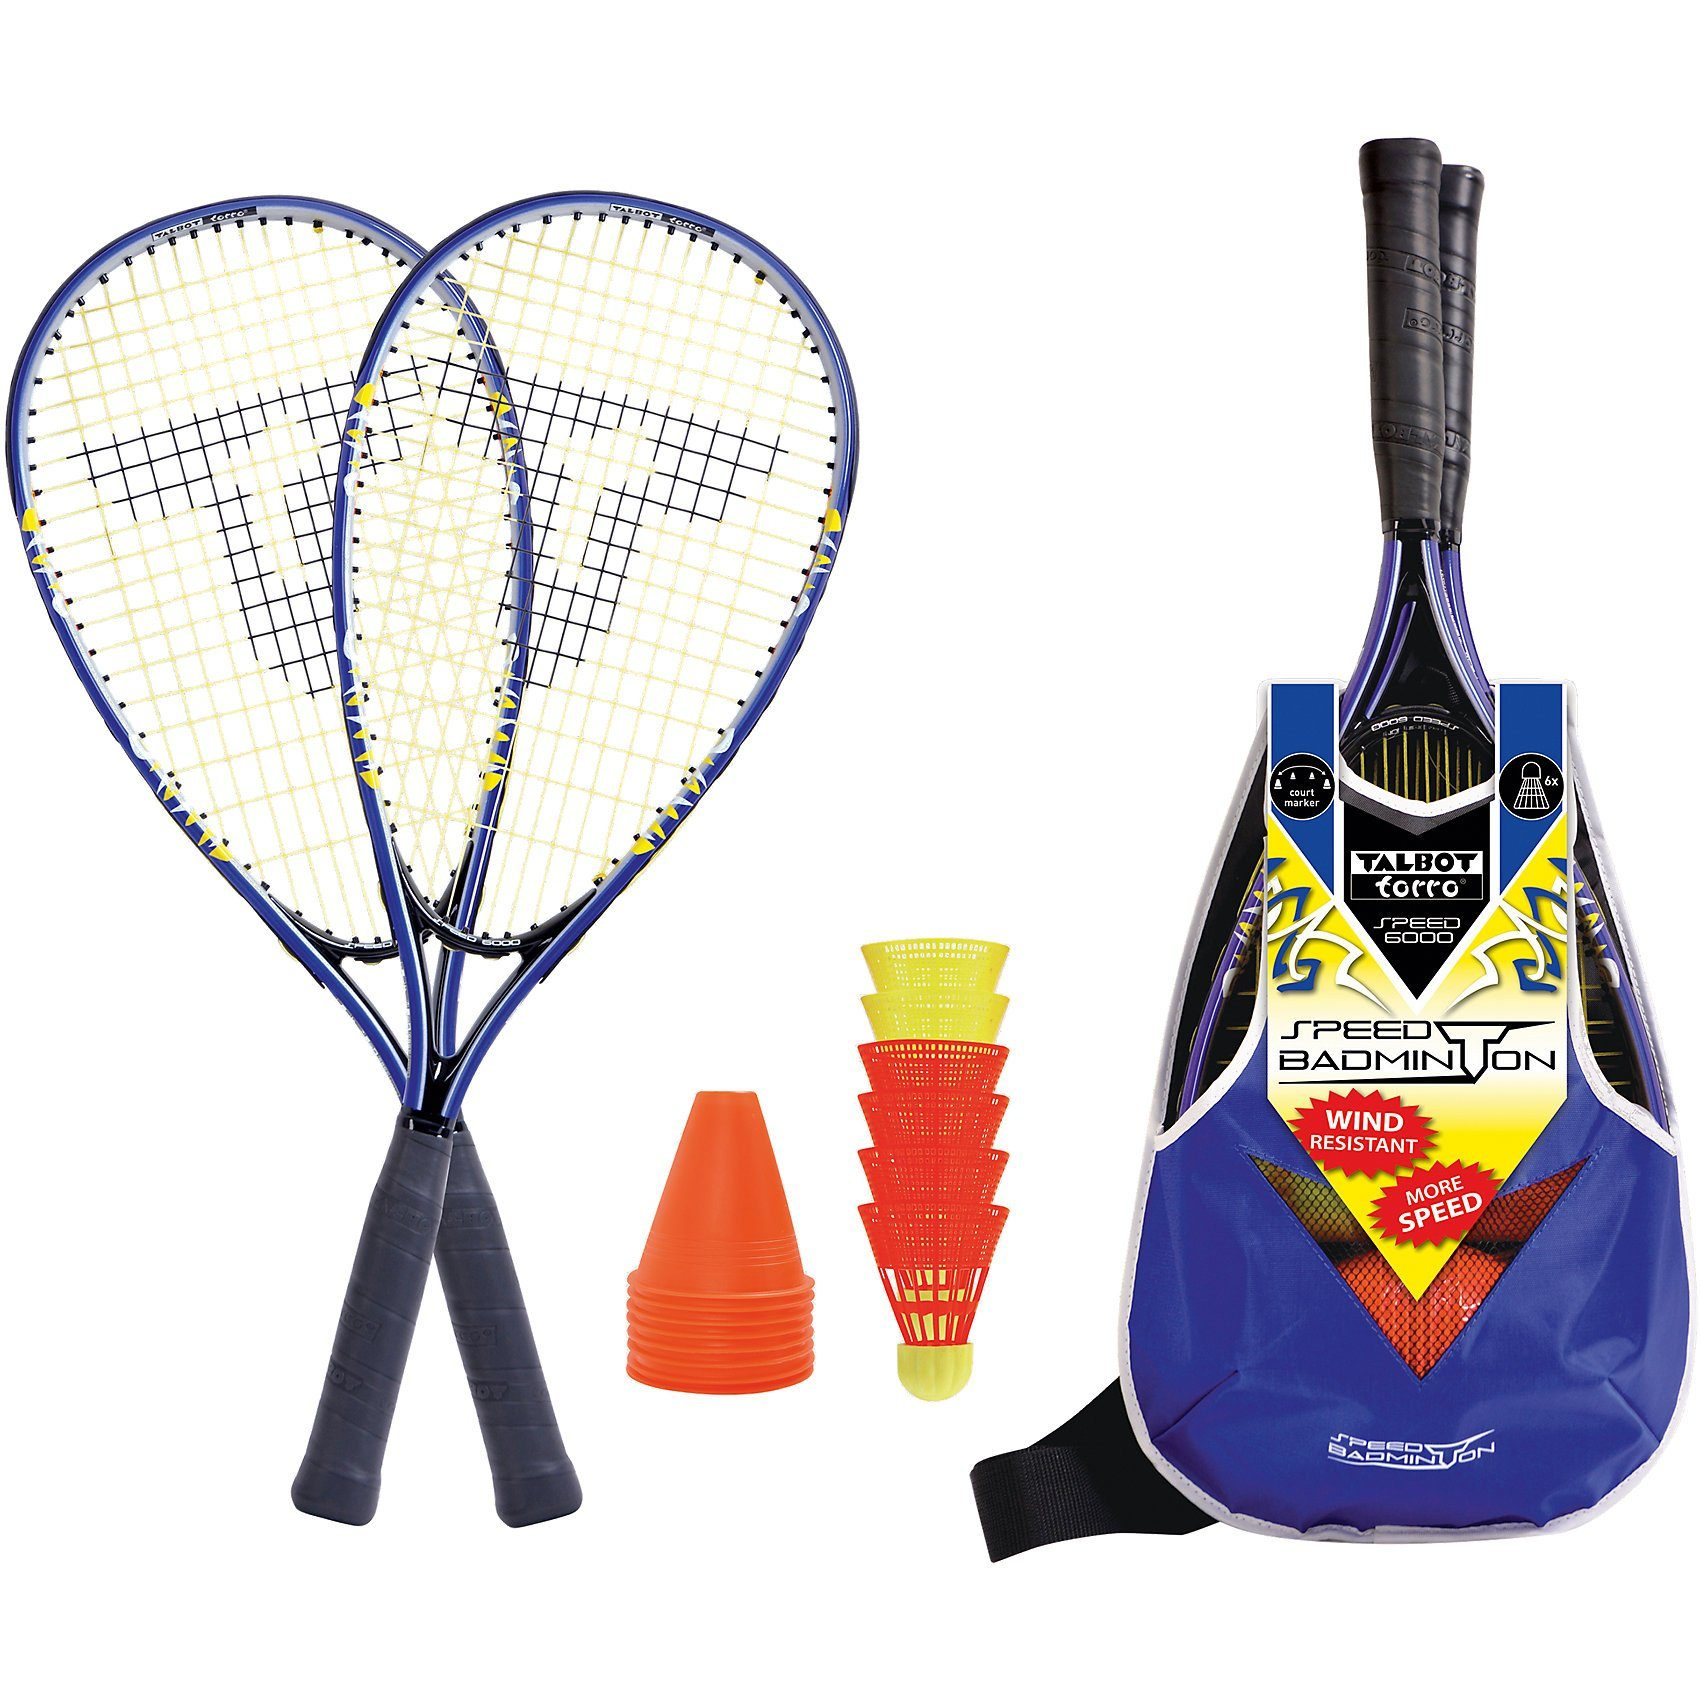 Talbot-Torro Speedbadminton Set Speed 6000